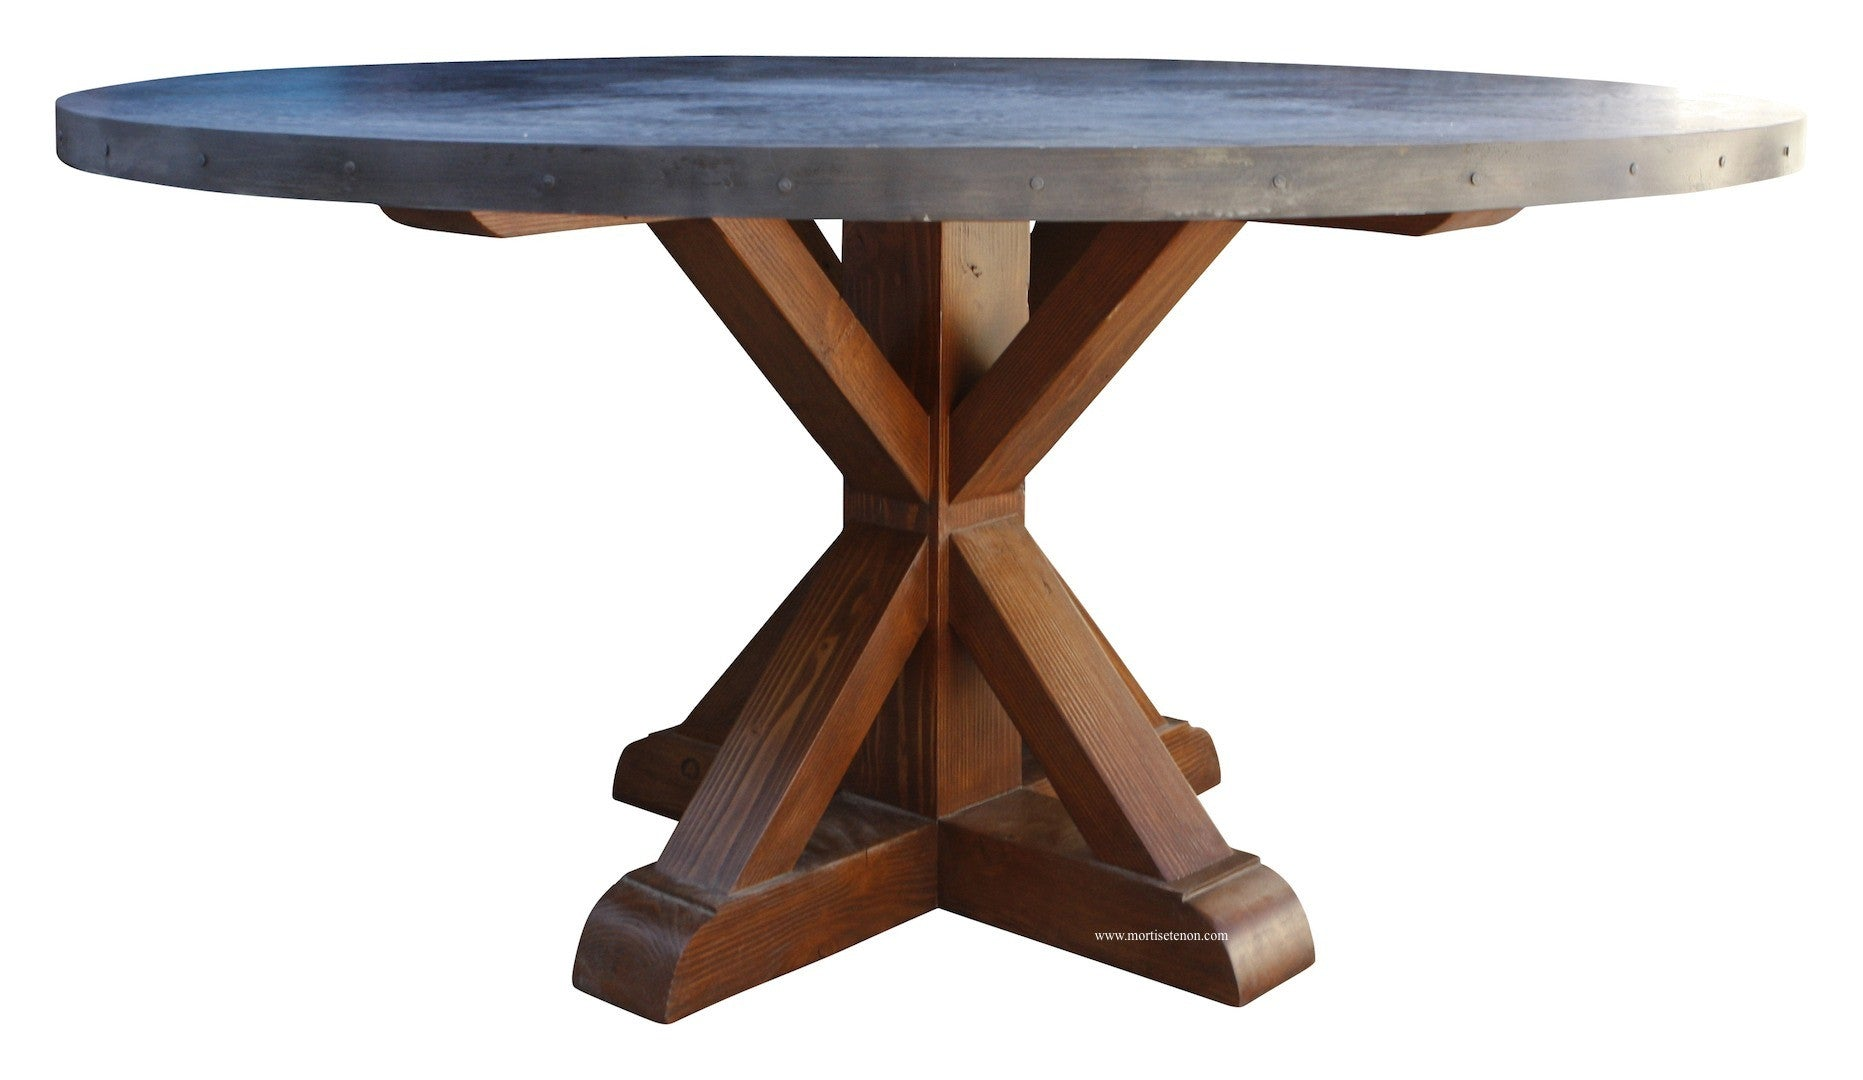 Henrik, Hammered Zinc Round Dining Table – Mortise & Tenon